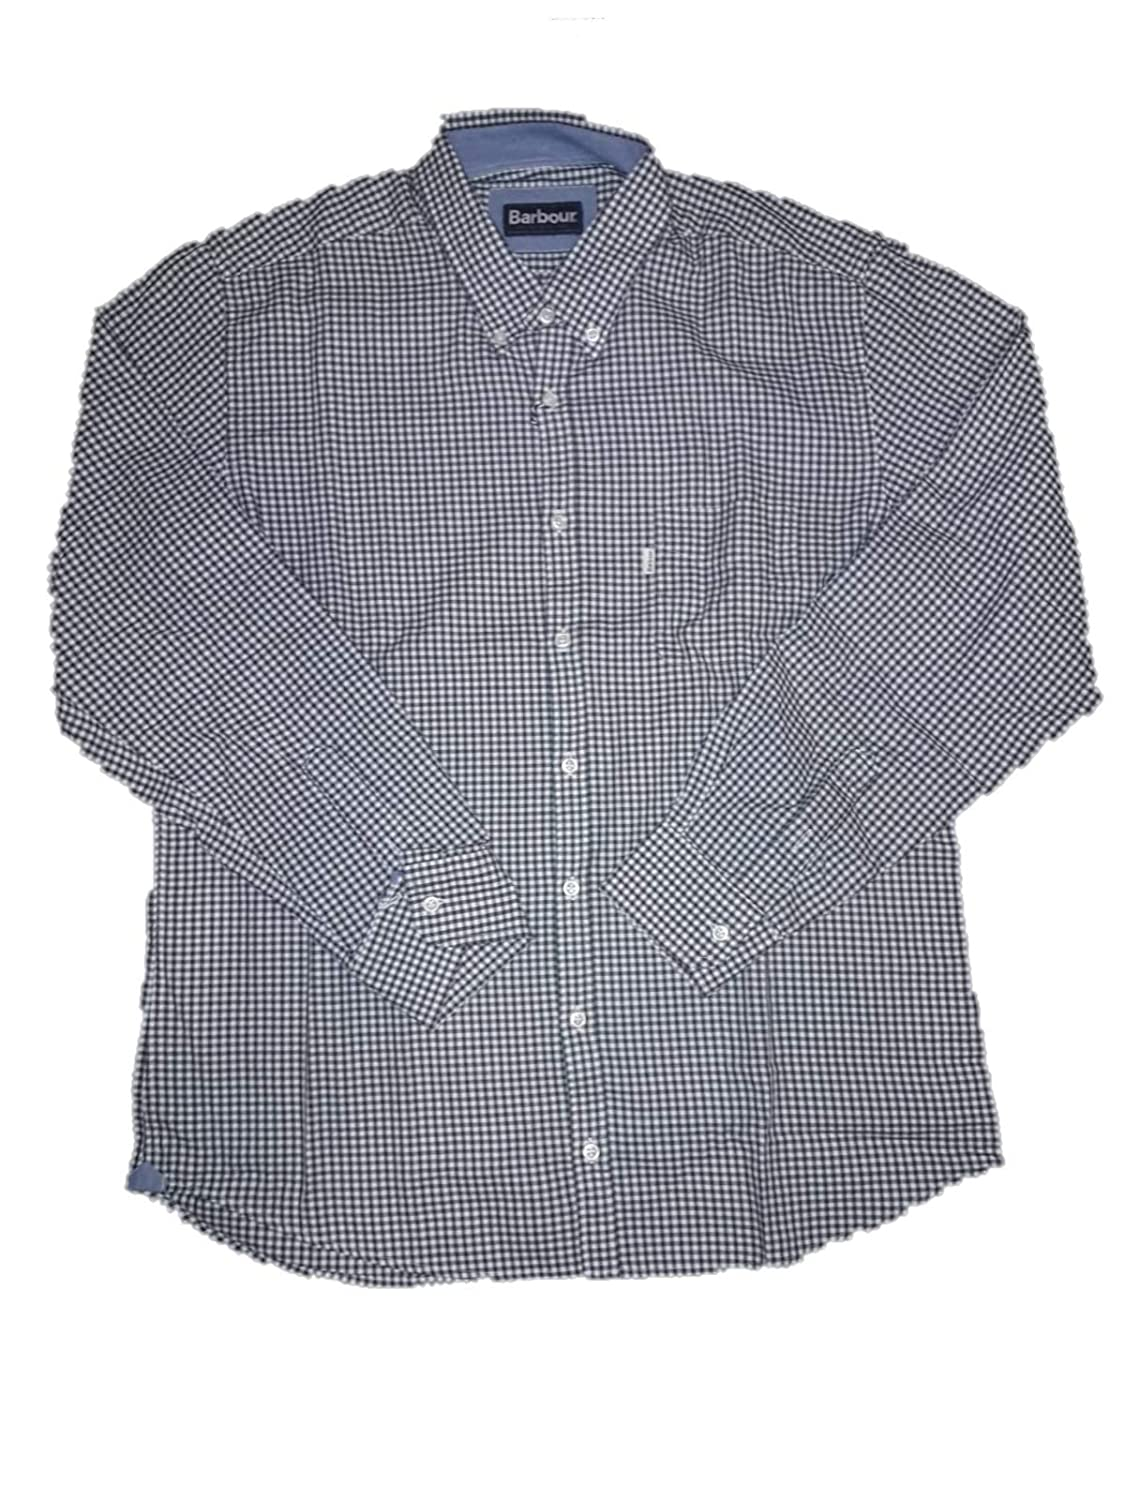 Barbour Shirt BS216252-XL: Amazon.es: Ropa y accesorios